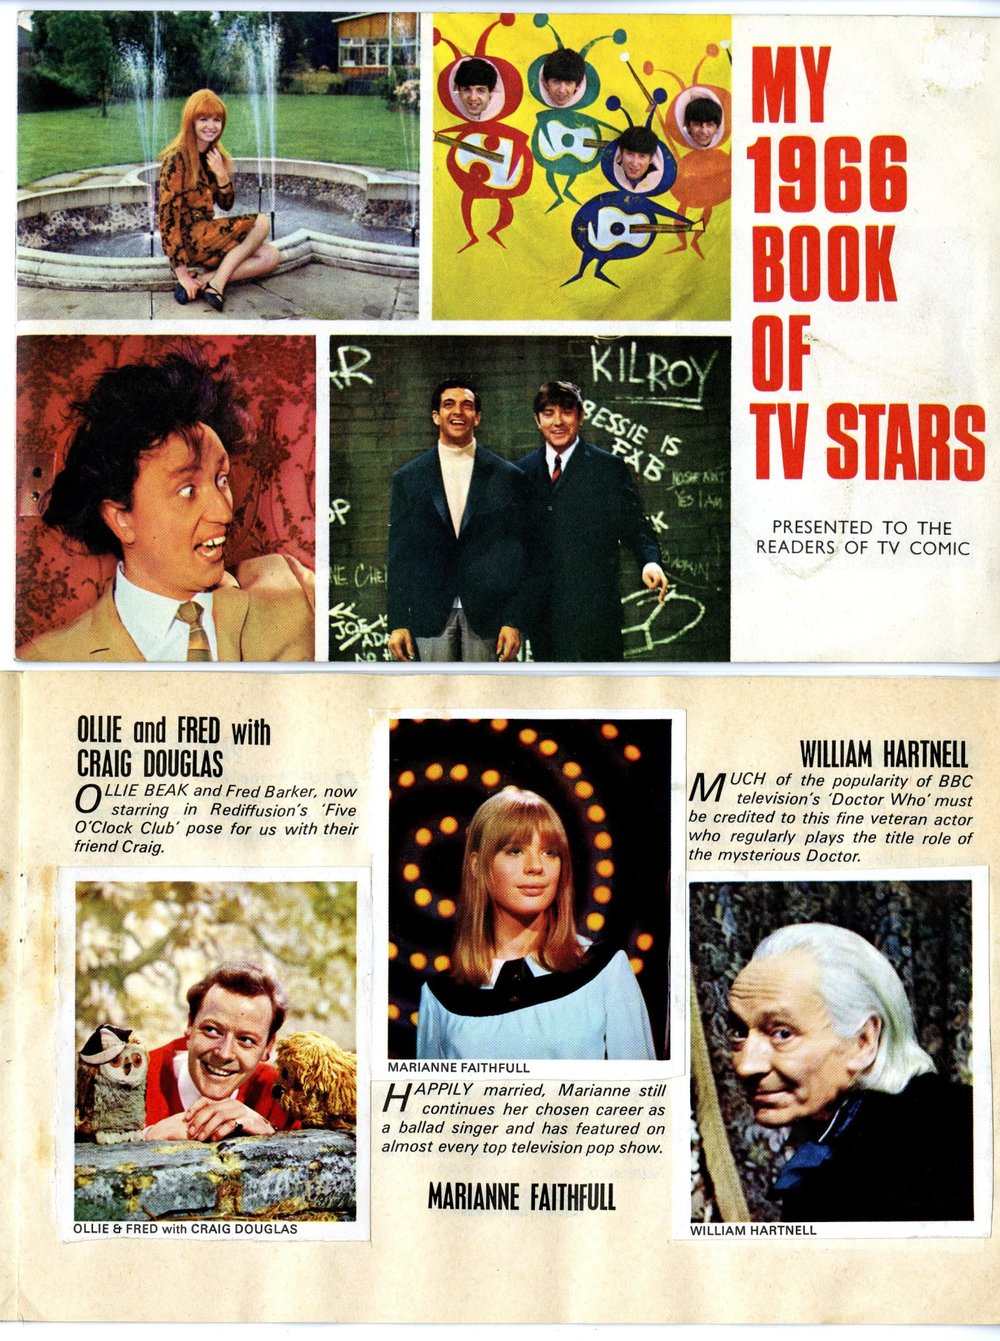 My 1966 Book of TV Stars (showing the William Hartnell sticker), presented free with TV Comic